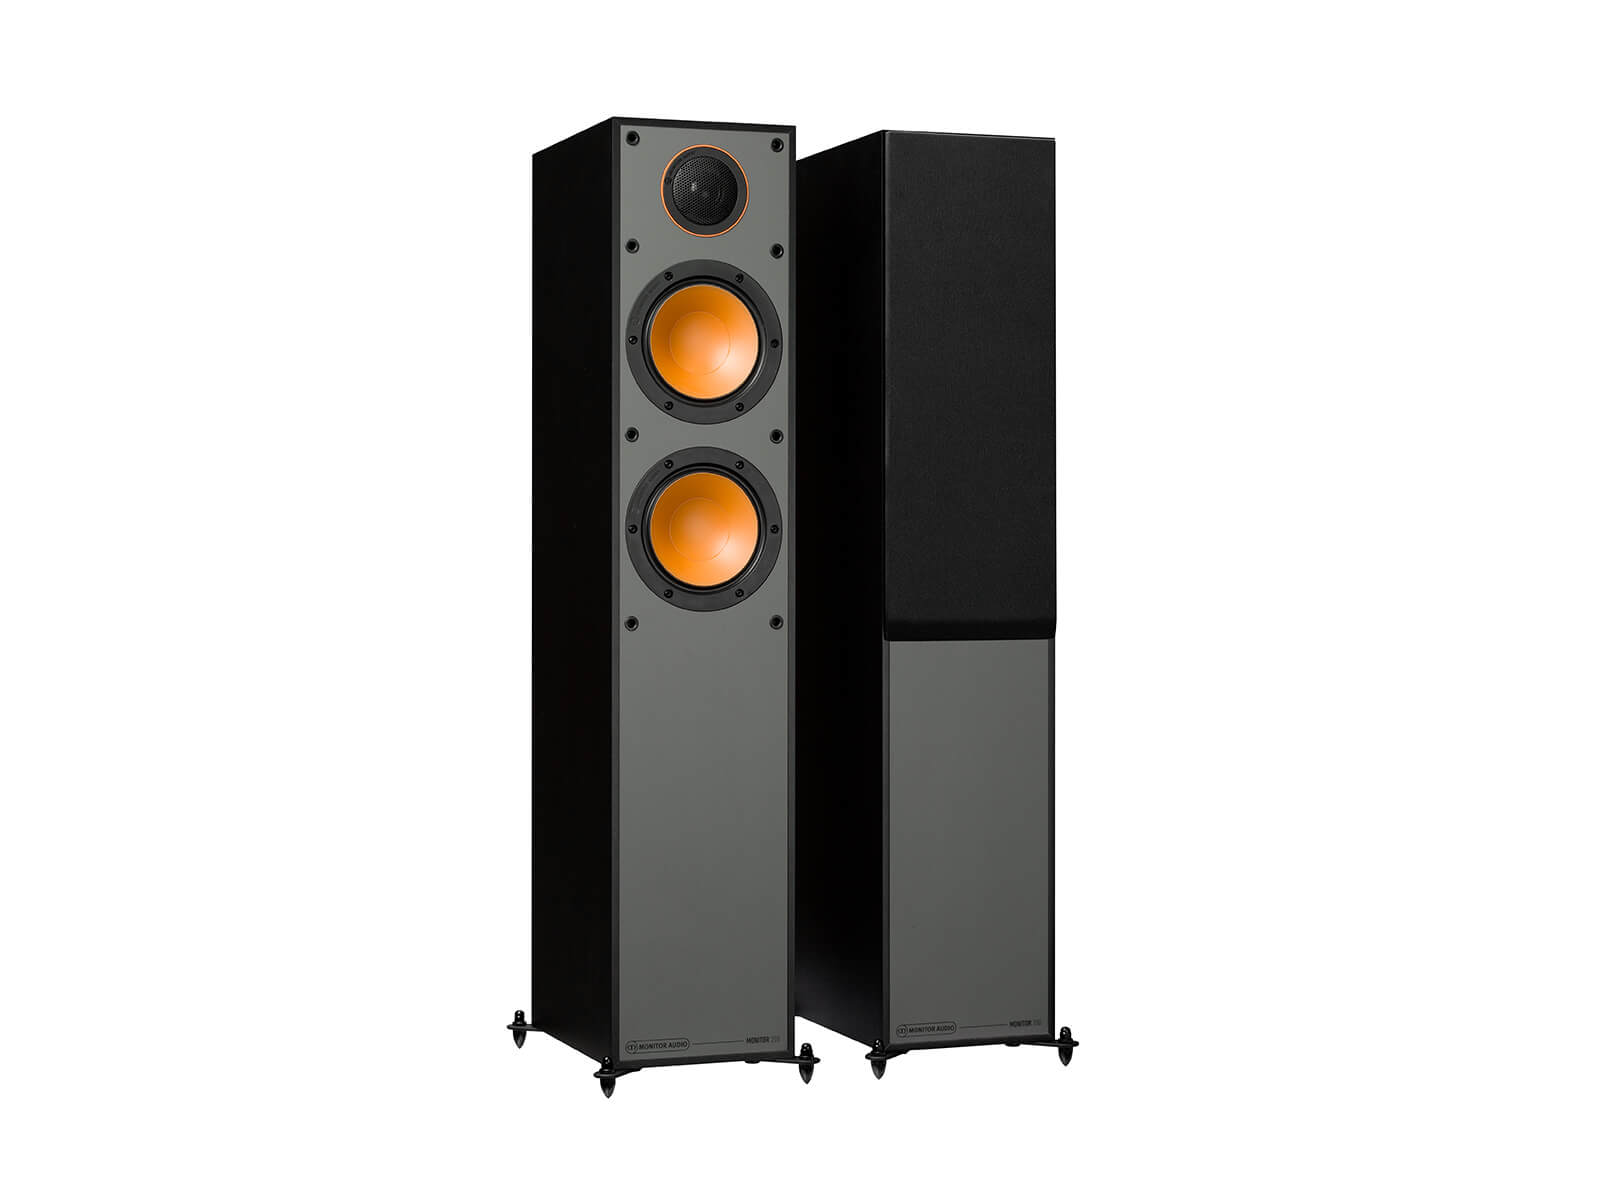 Monitor 200, floorstanding speakers, with and without grille in a black finish.